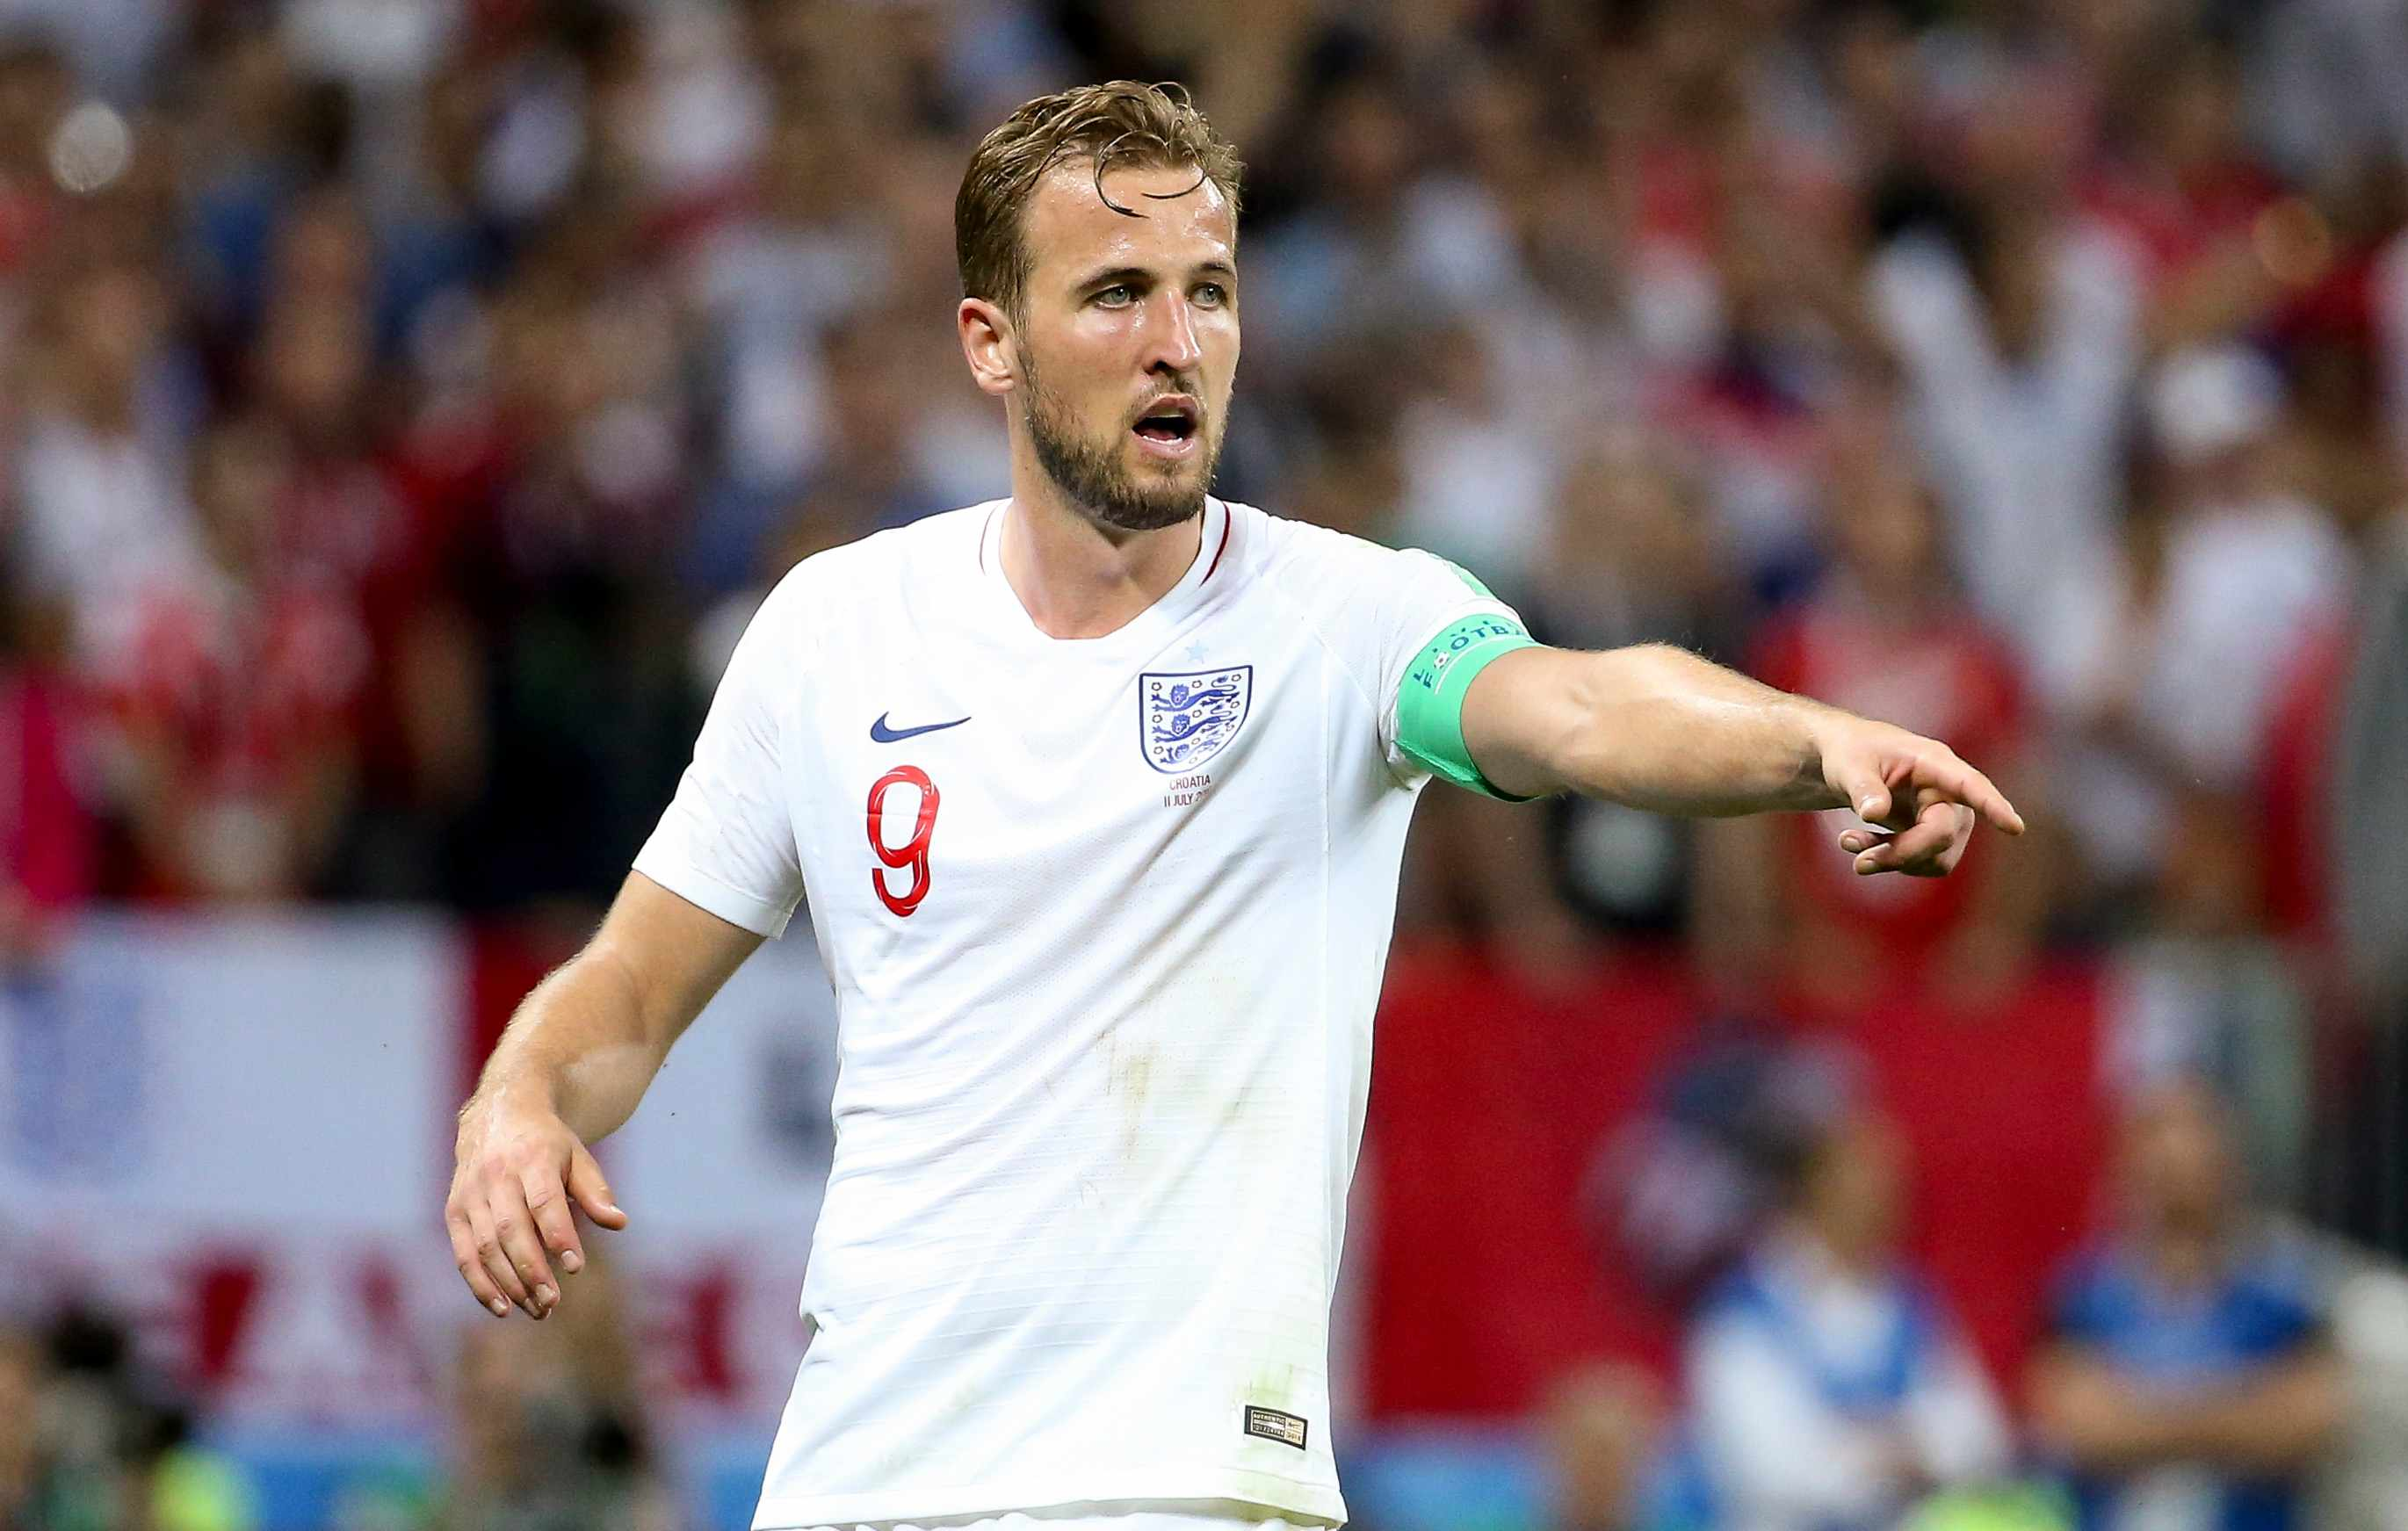 MOSCOW, RUSSIA - JULY 11: Harry Kane of England during the 2018 FIFA World Cup Russia Semi Final match between England and Croatia at Luzhniki Stadium on July 11, 2018 in Moscow, Russia. (Photo by Jean Catuffe/Getty Images)  TL